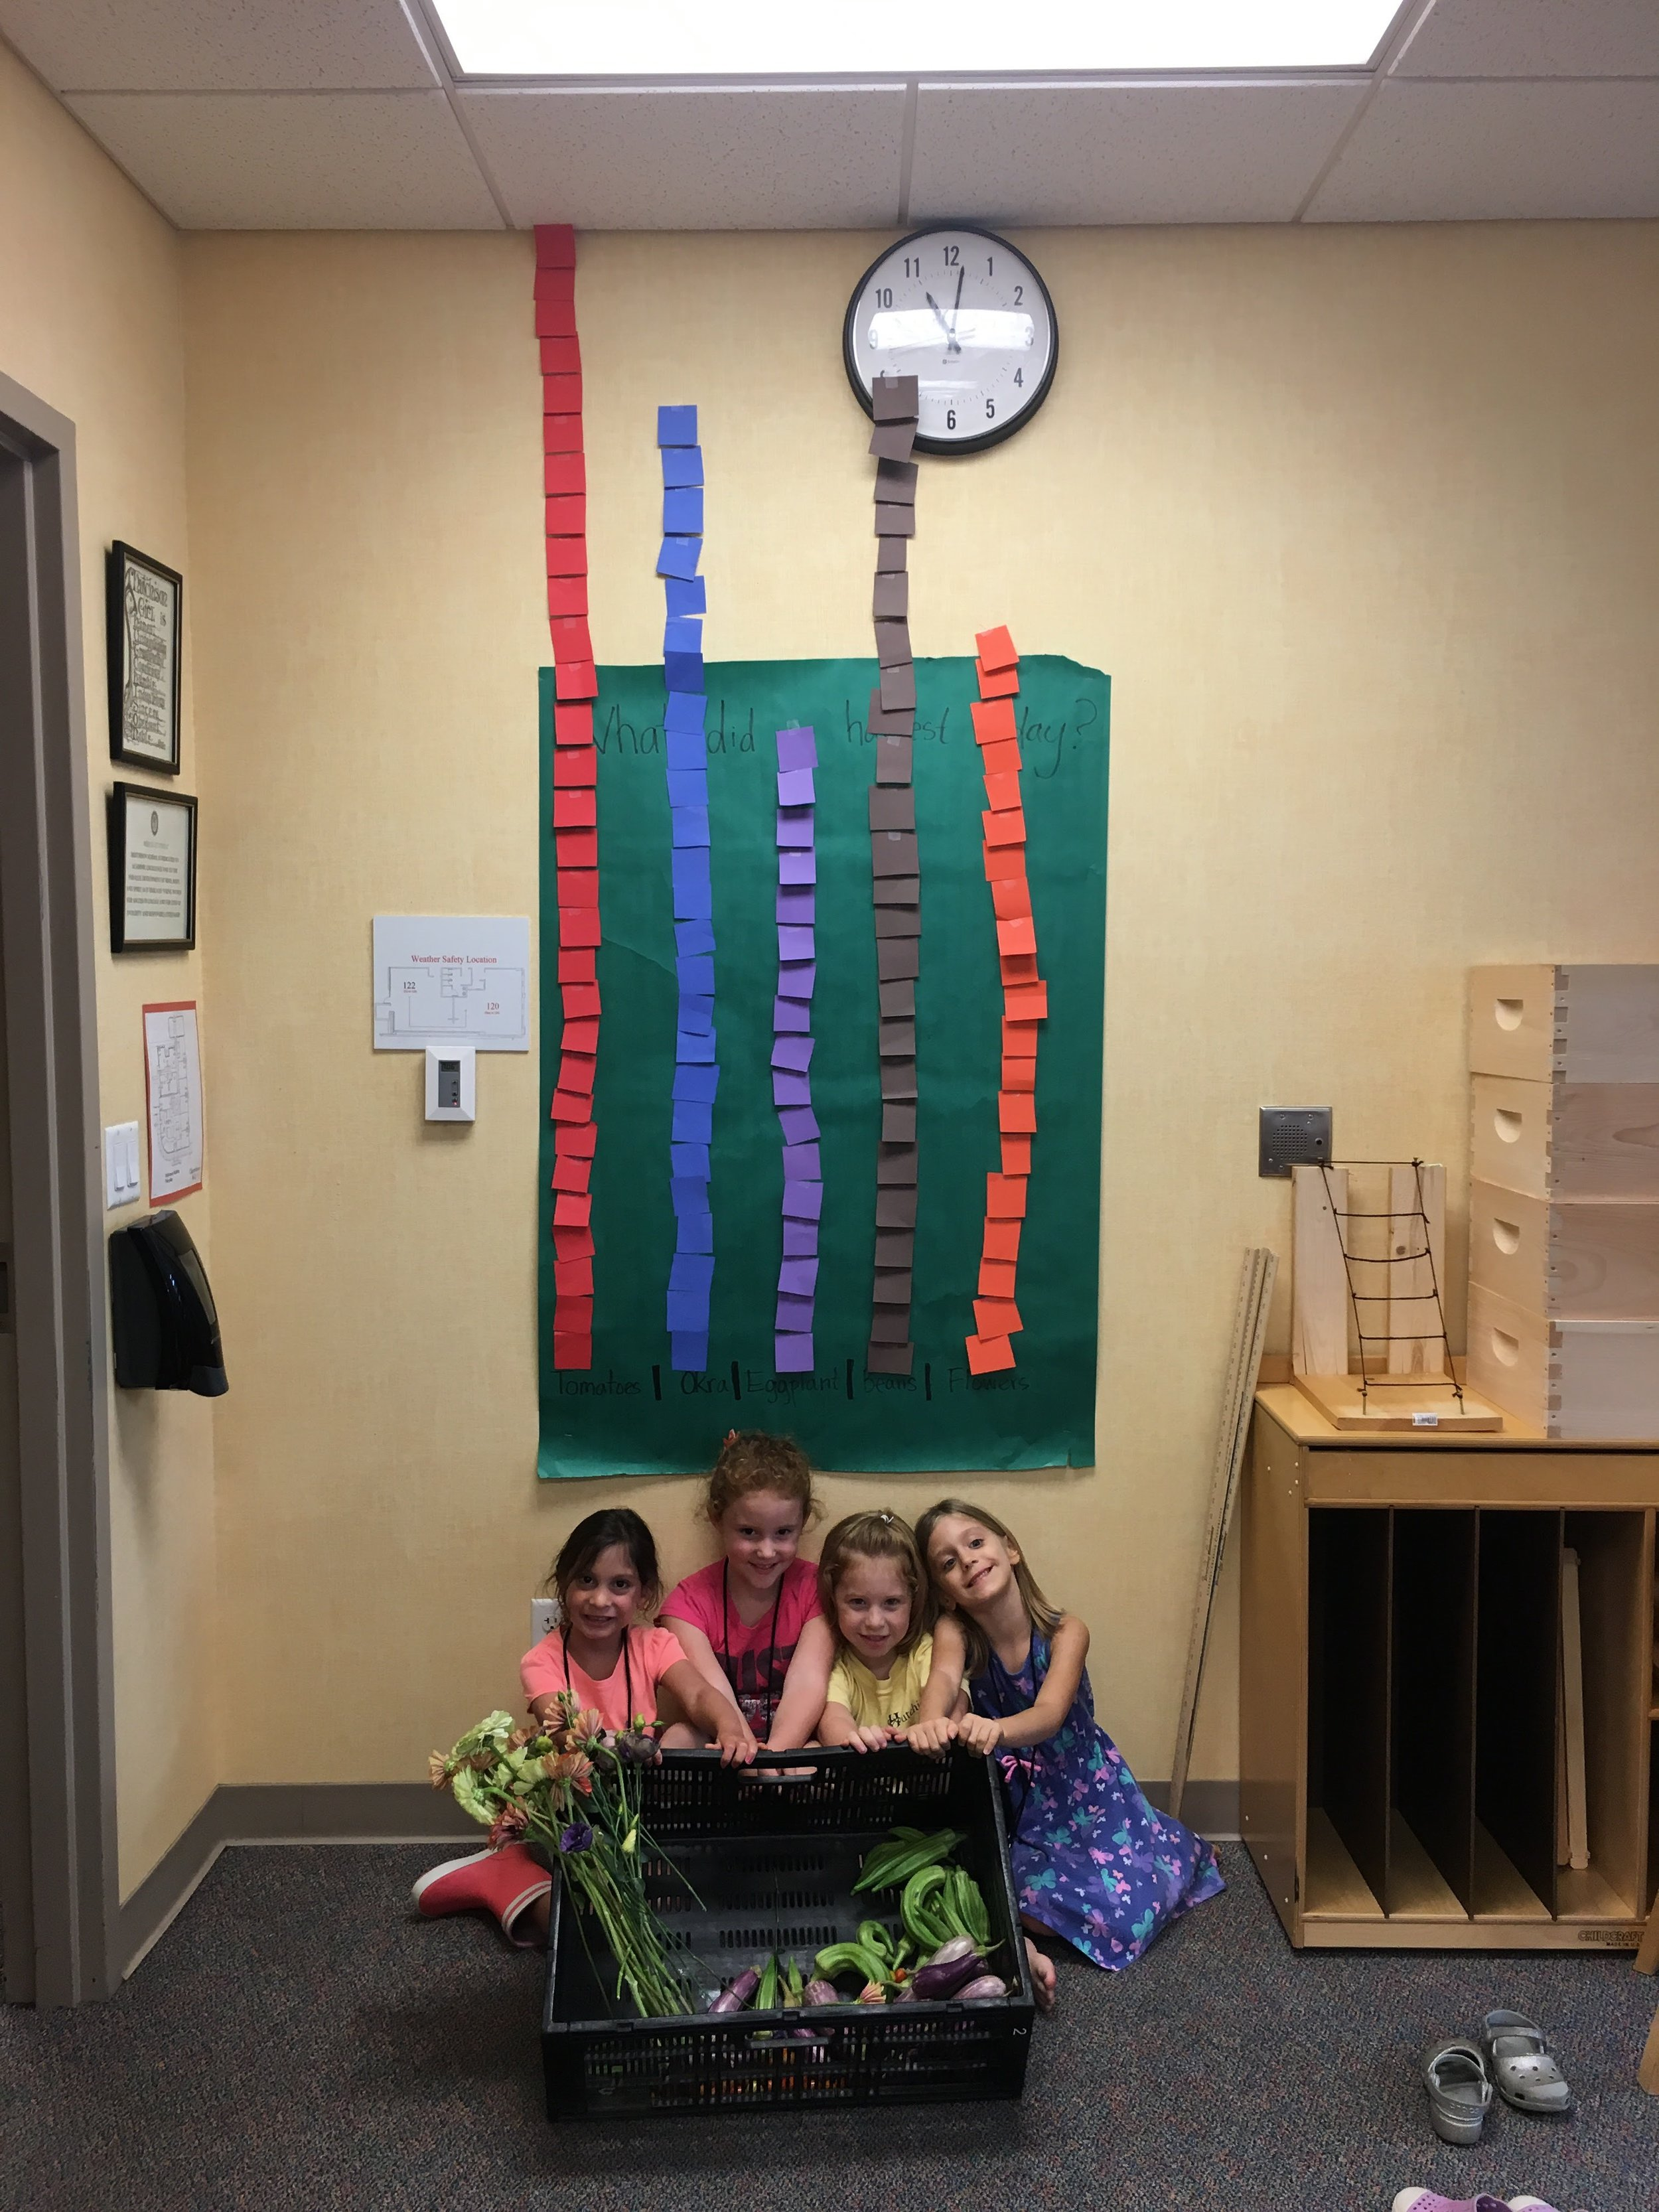 They graphed their harvest!